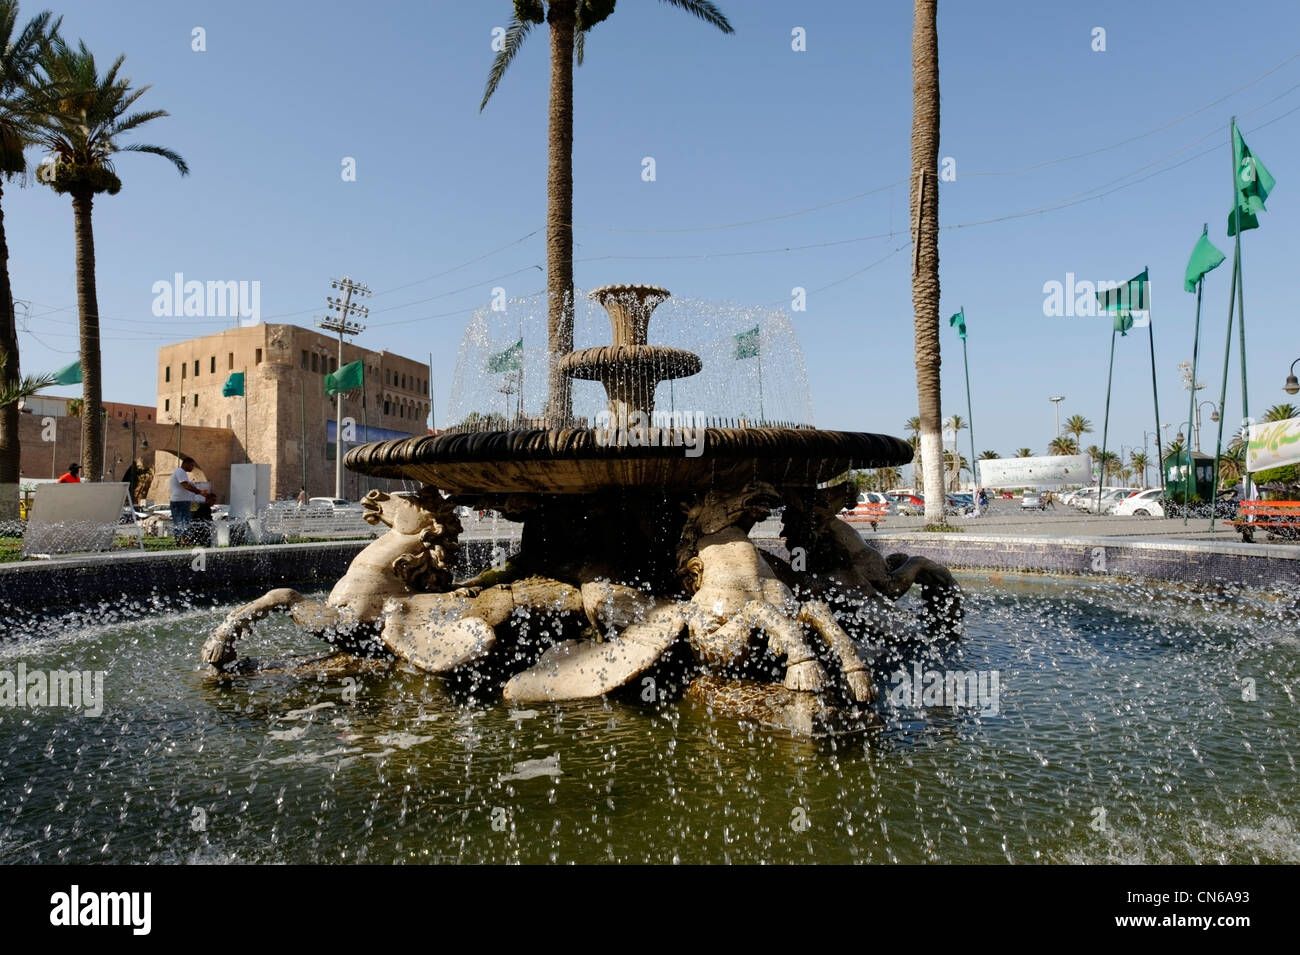 Tripoli. Libya. Close-up of horse head from the ornate water fountain of sea horses located in Green Square or Martyrs Square. Stock Photo